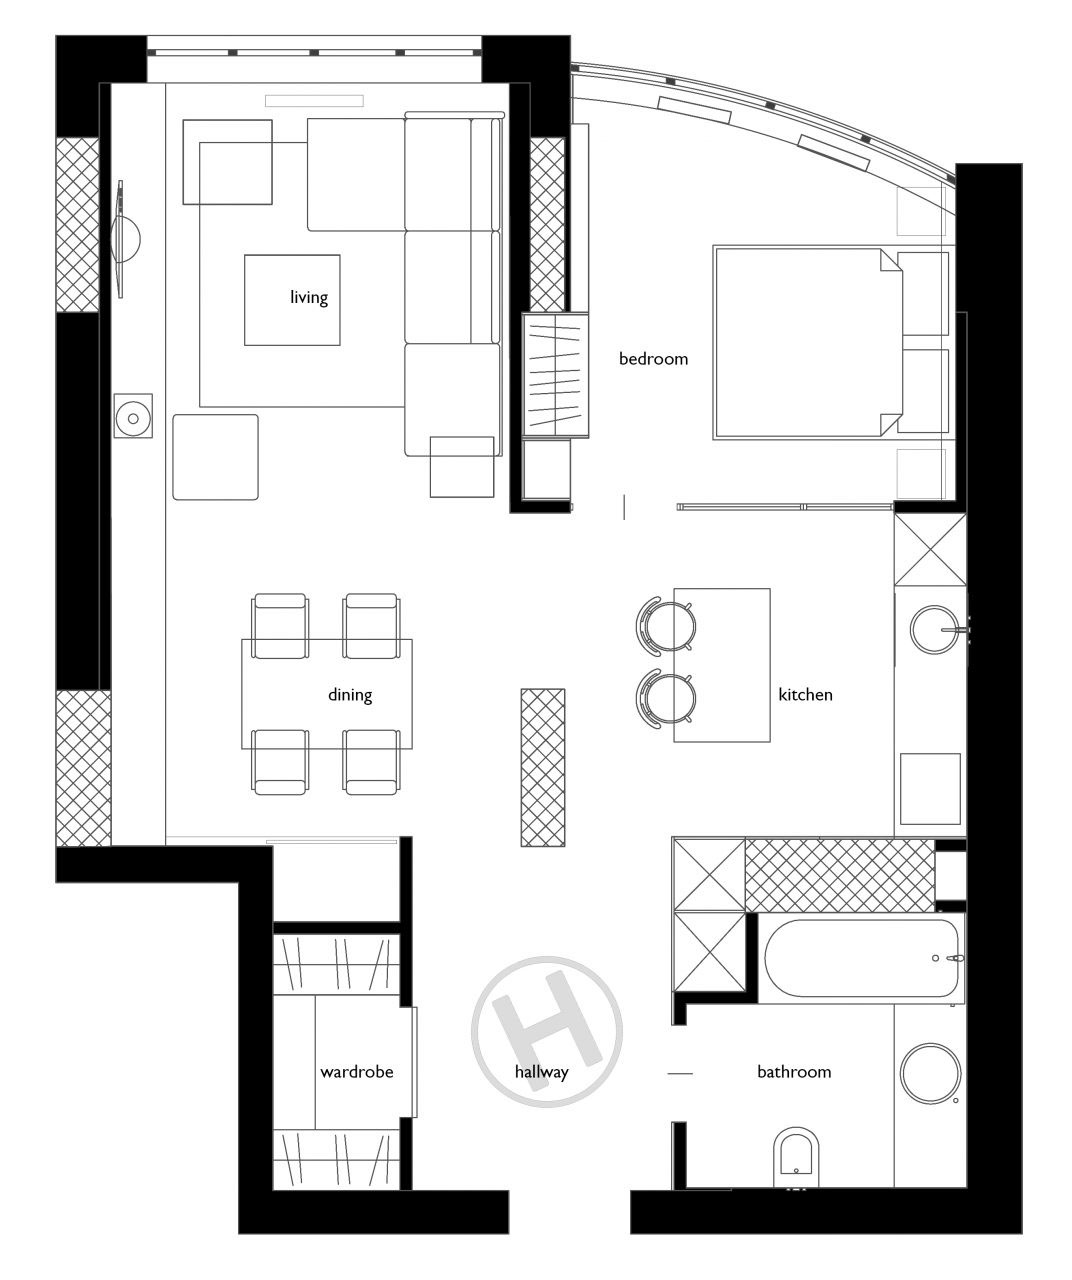 2 one bedroom home apartment designs under 60 square meters with floor plans interior - Single floor housessquare meters ...